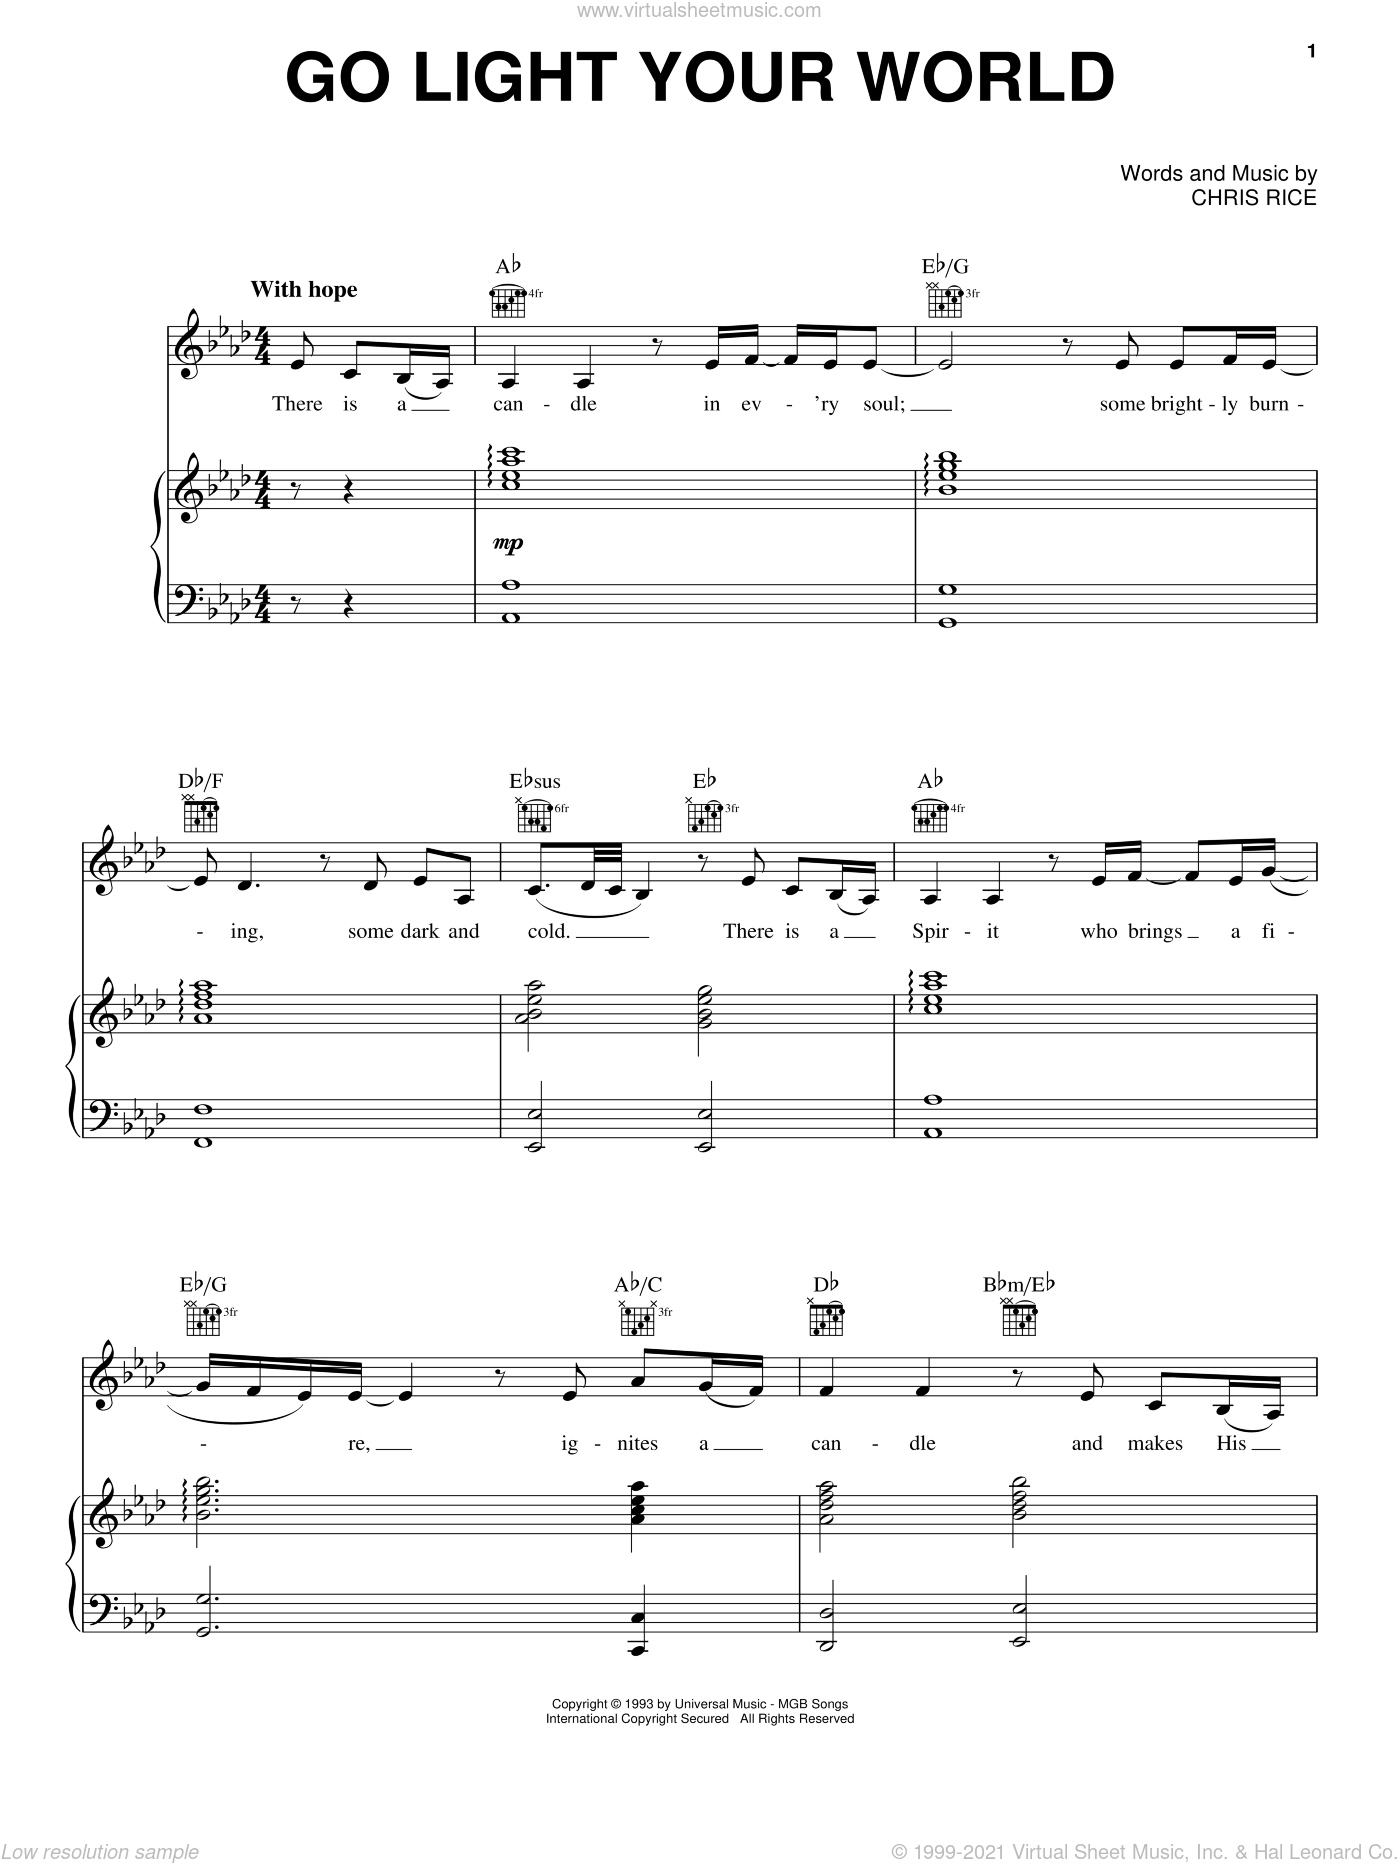 Go Light Your World sheet music for voice, piano or guitar by Chris Rice